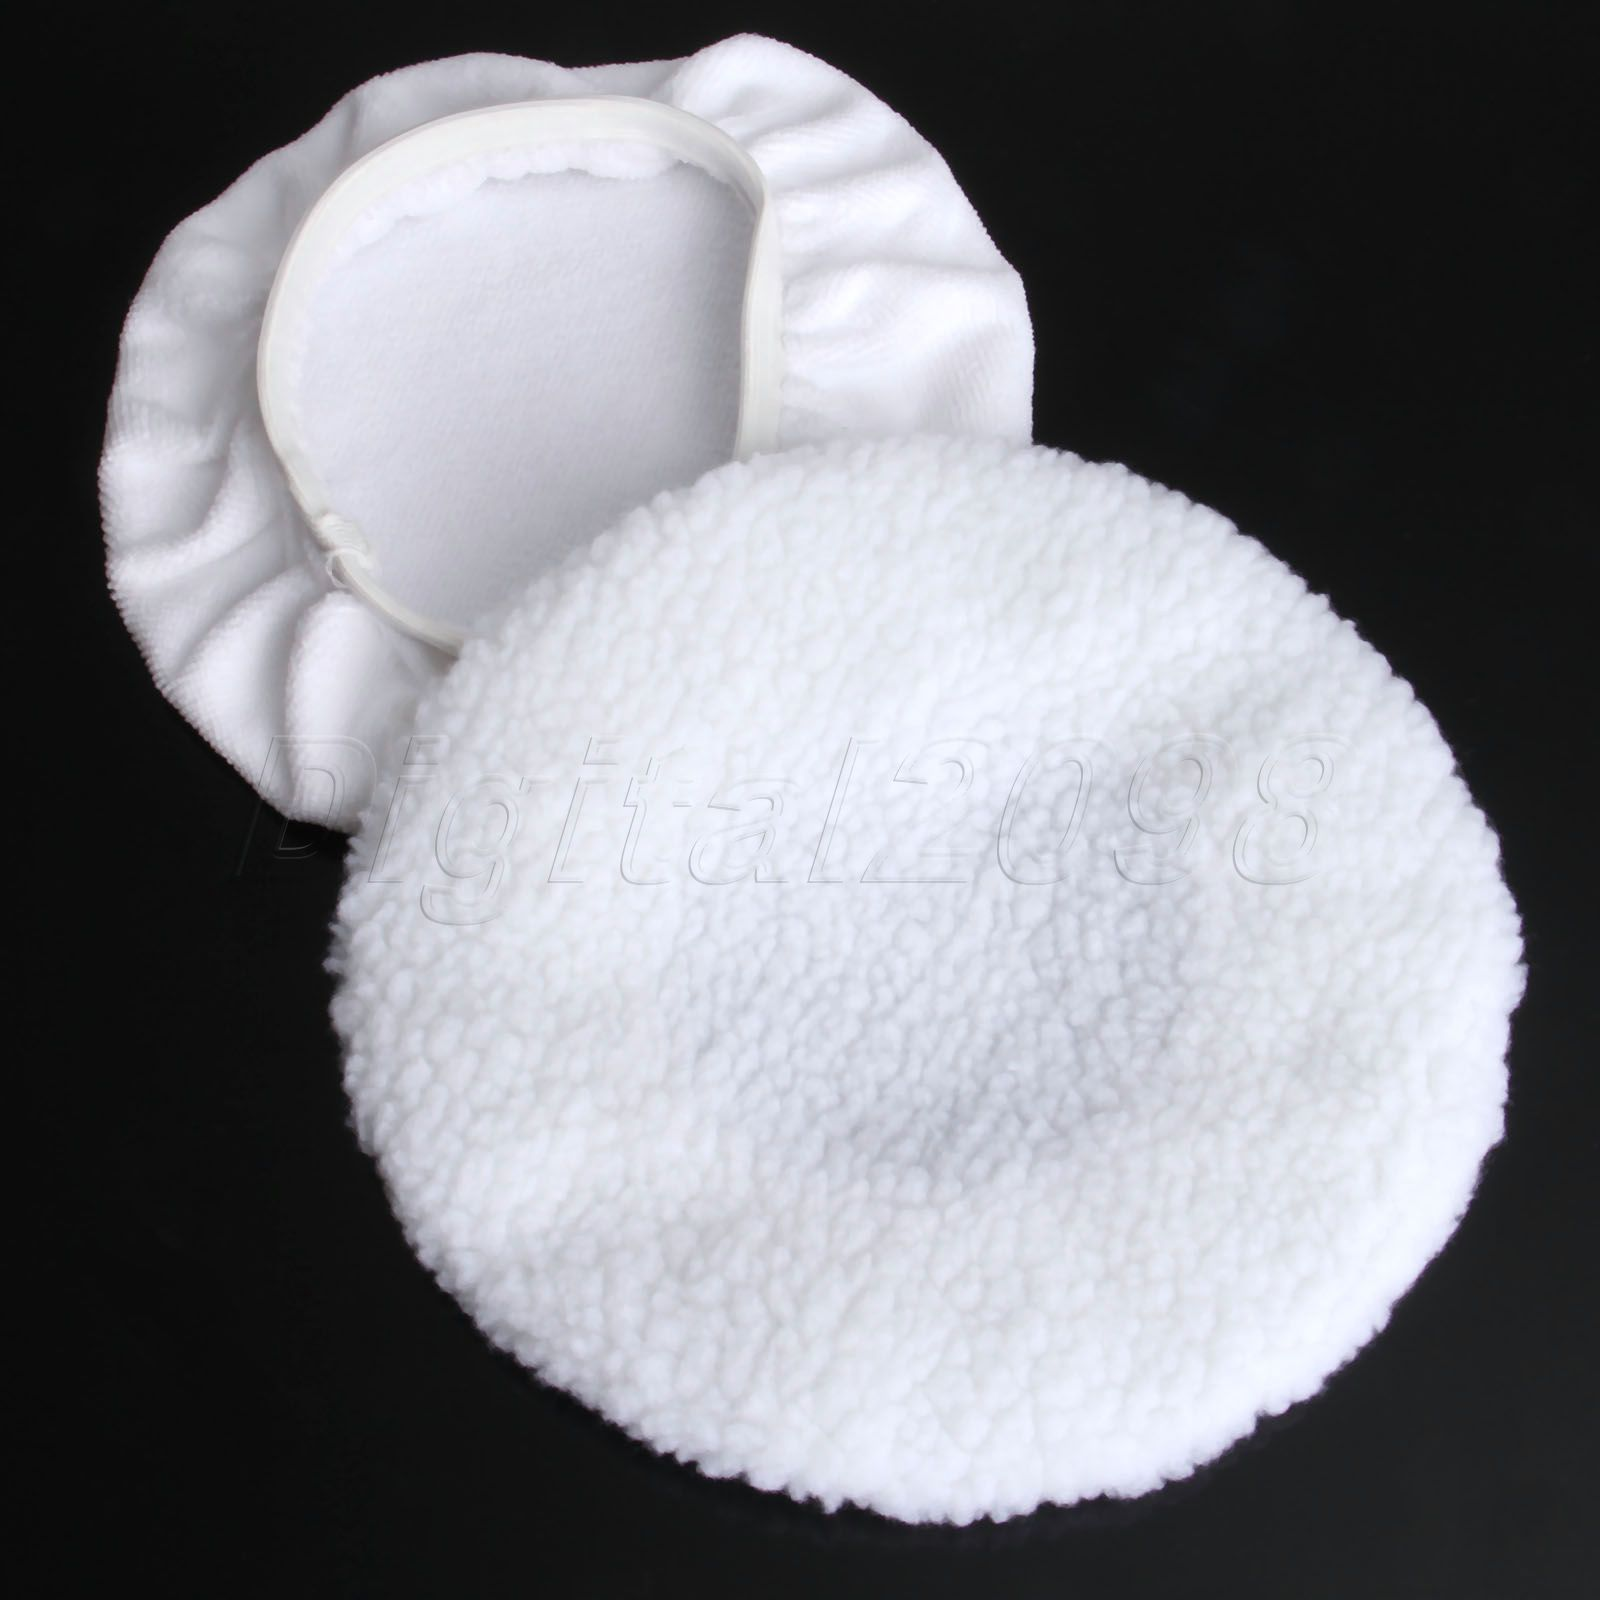 Image 4 - Yetaha 2Pair 23cm Soft Wool Car Polishing Bonnet Buffer Pads For 9inch 10inch Car Polisher Waxing Auto Polish Sponge Cover Pad-in Sponges, Cloths & Brushes from Automobiles & Motorcycles